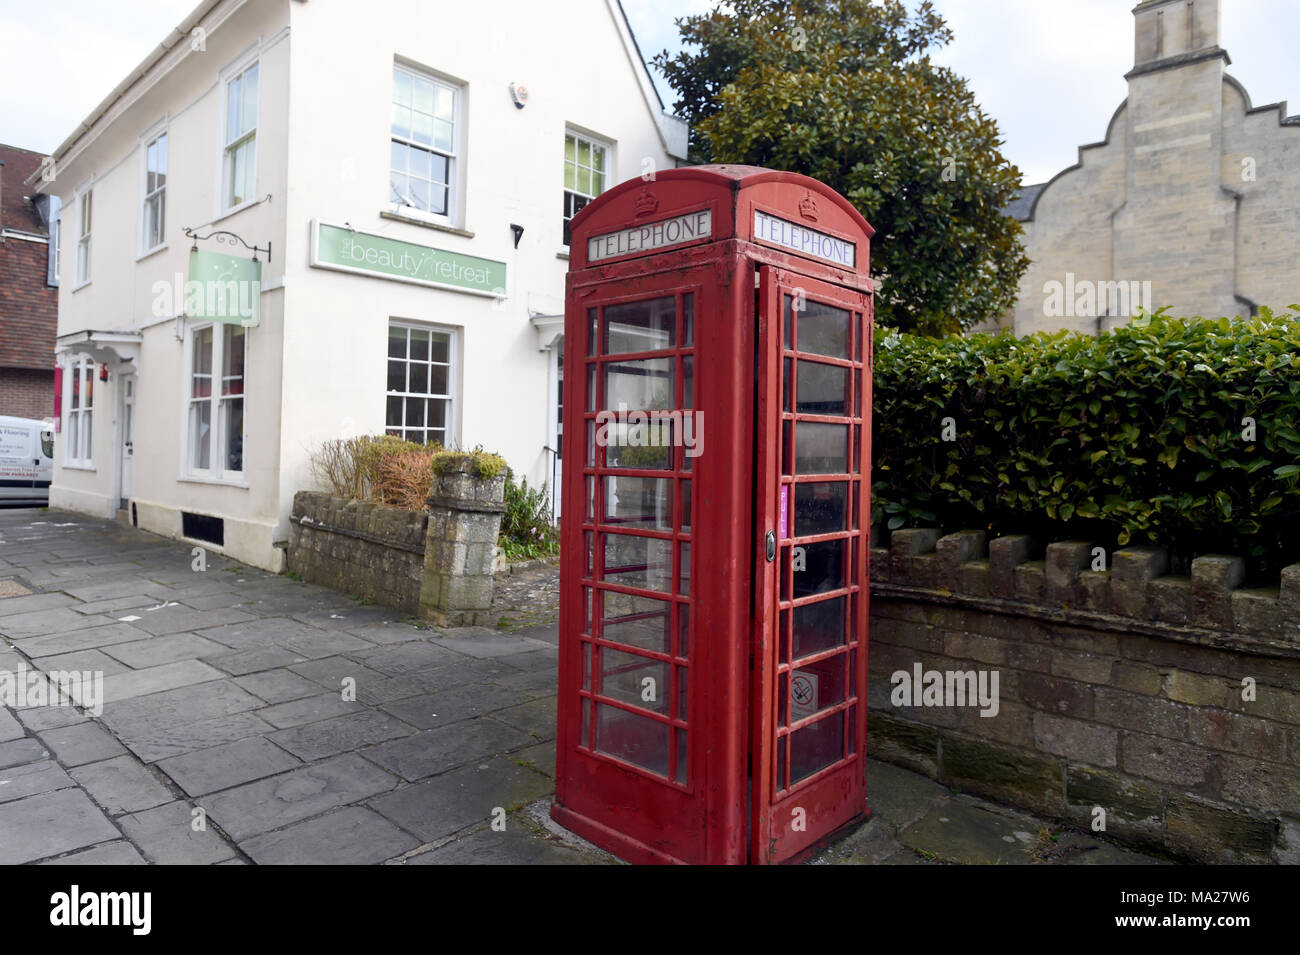 Red telephone box in the town of Devizes in the county of Wiltshire UK - Stock Image